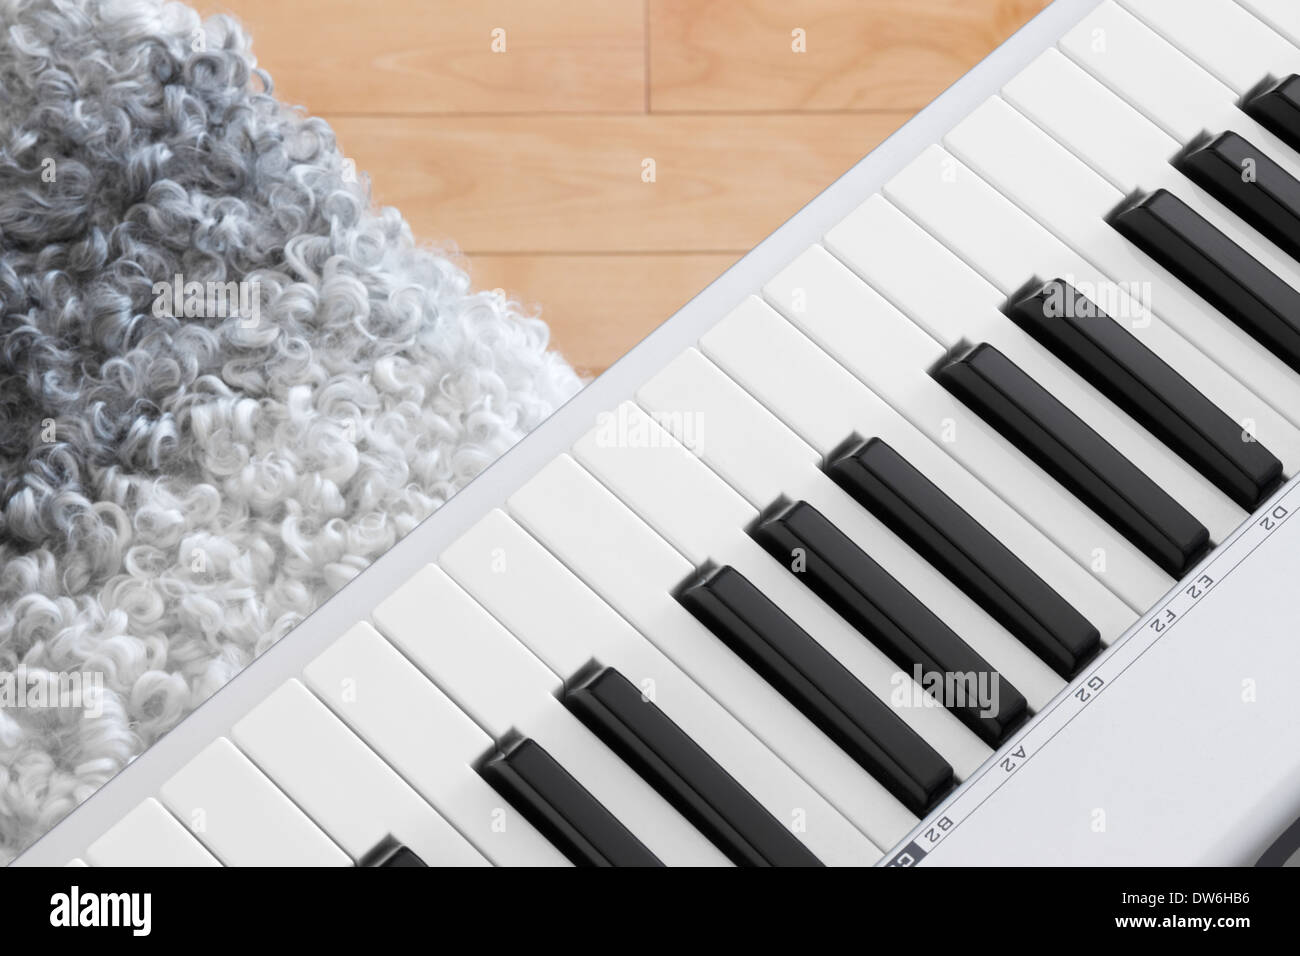 Close-up of electric piano keys and chair. - Stock Image